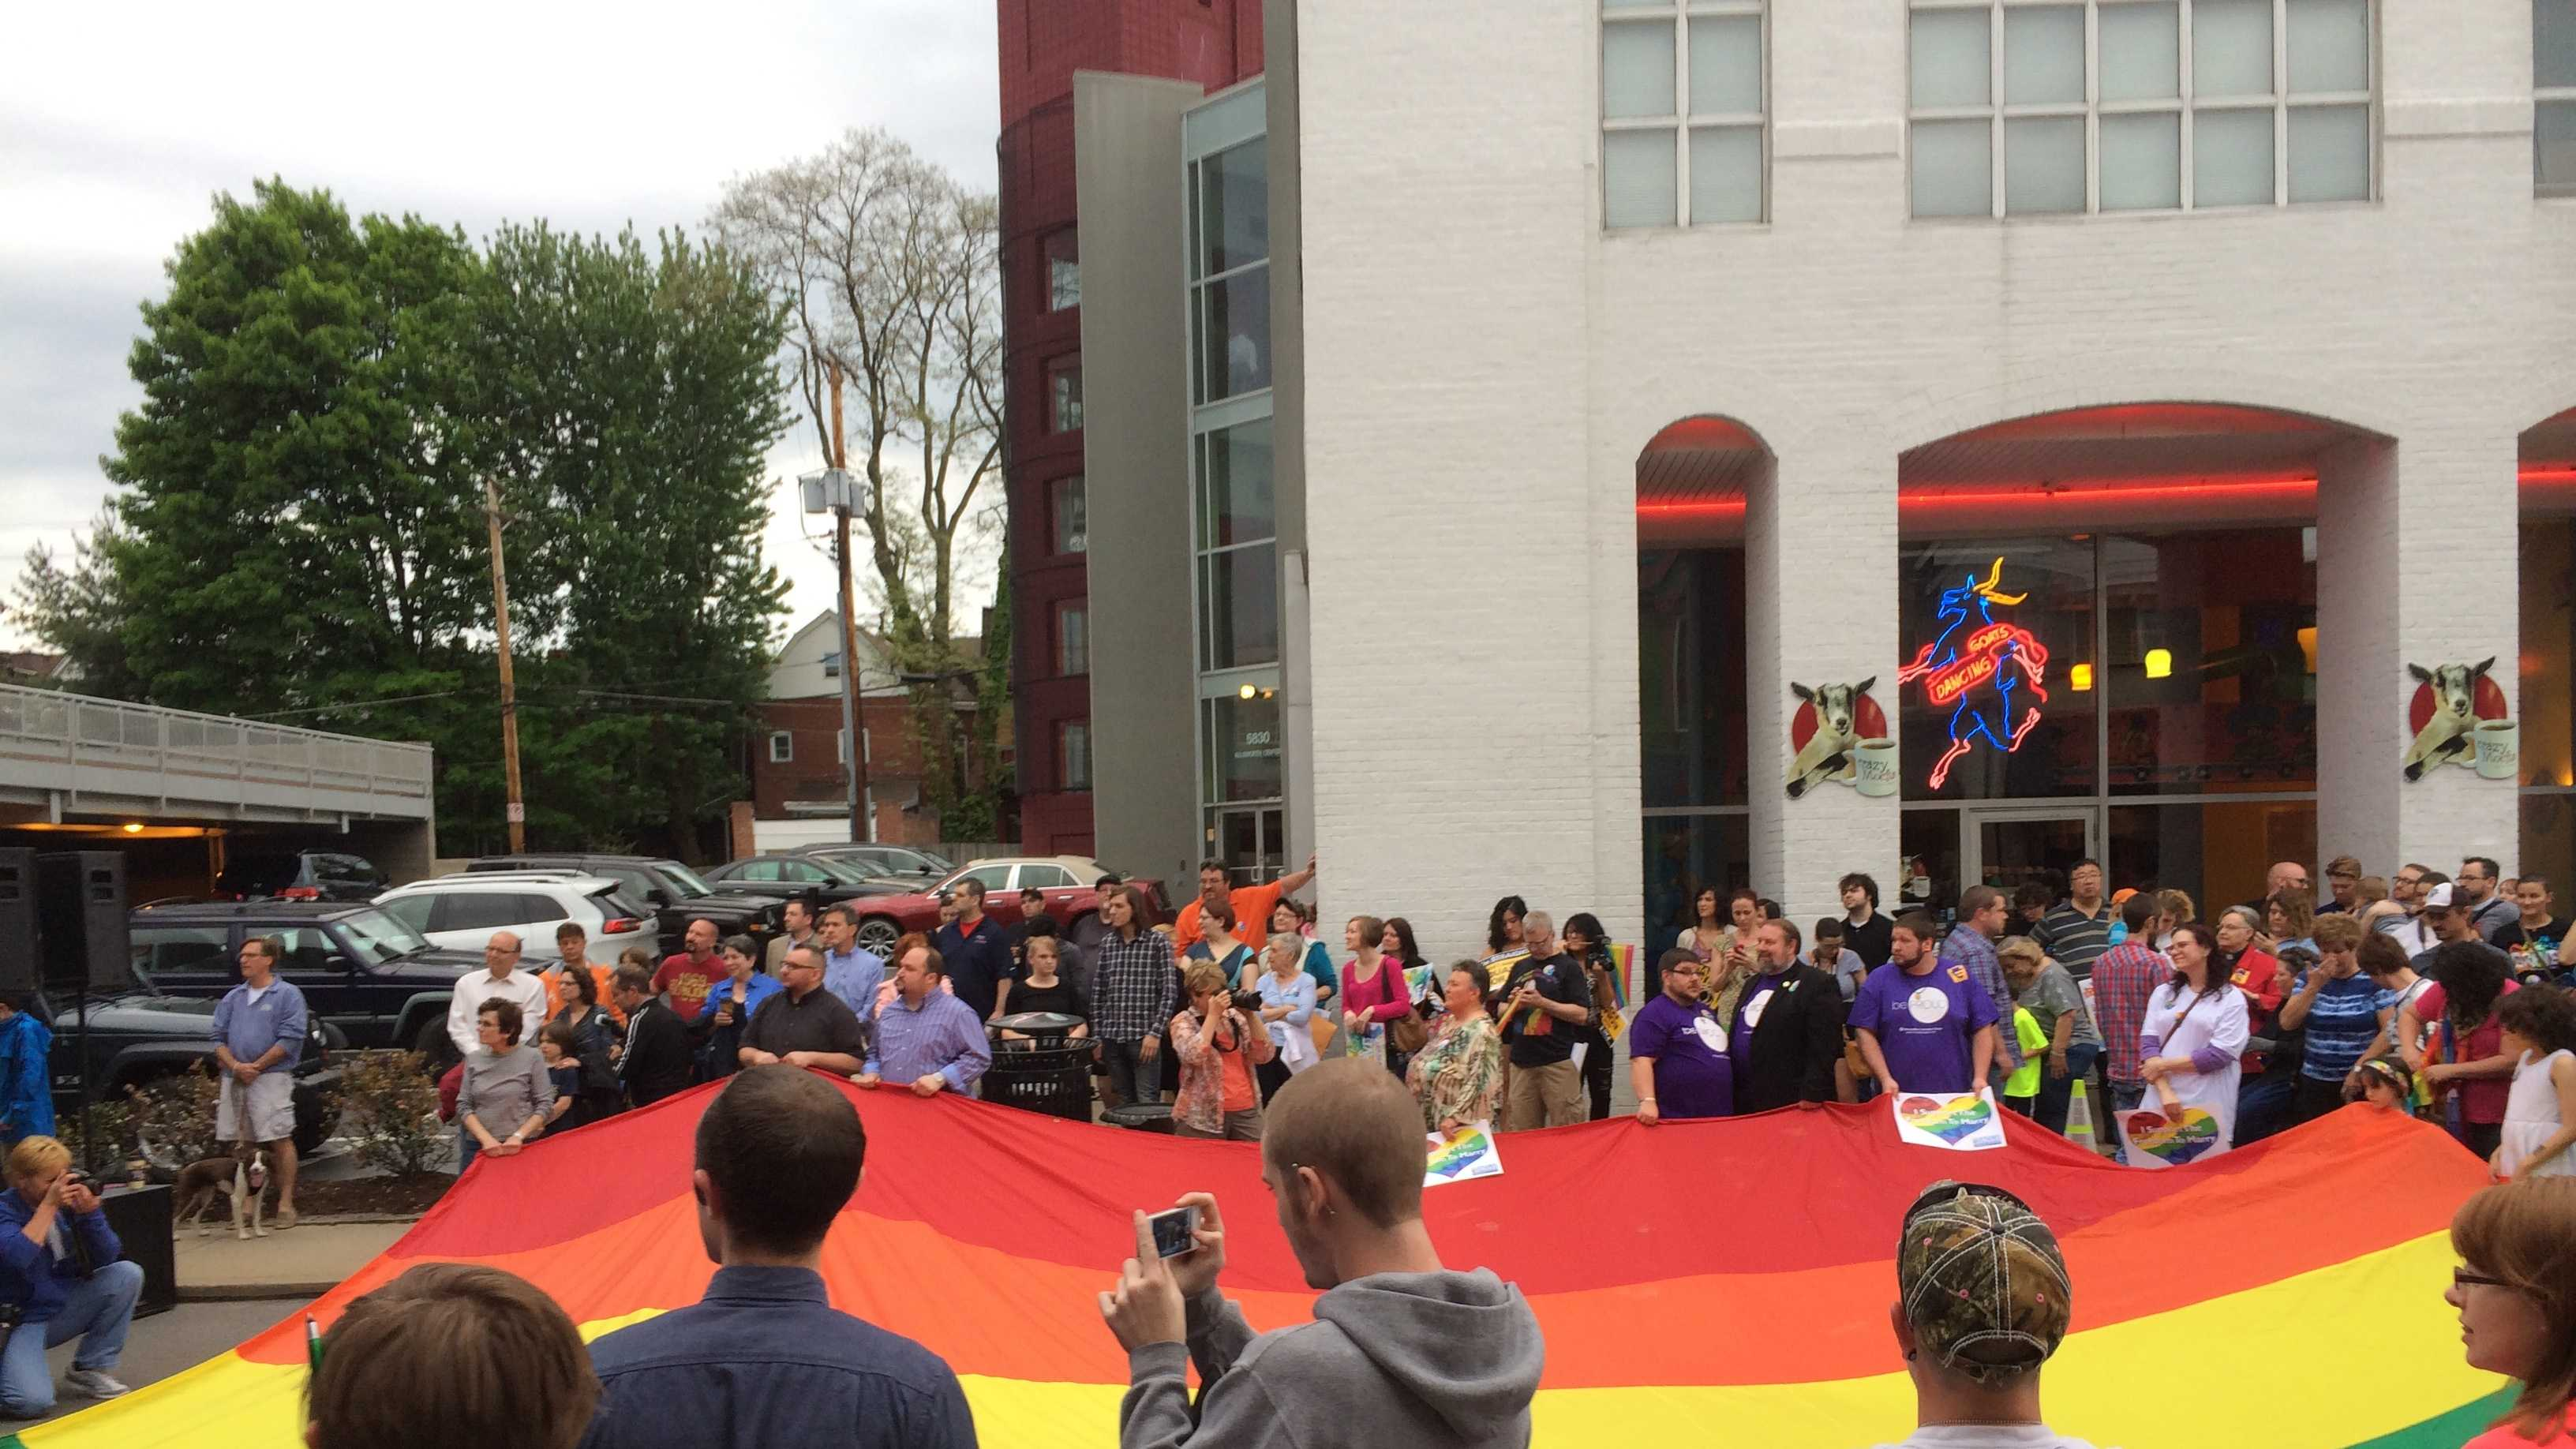 gay marriage rally in Shadyside